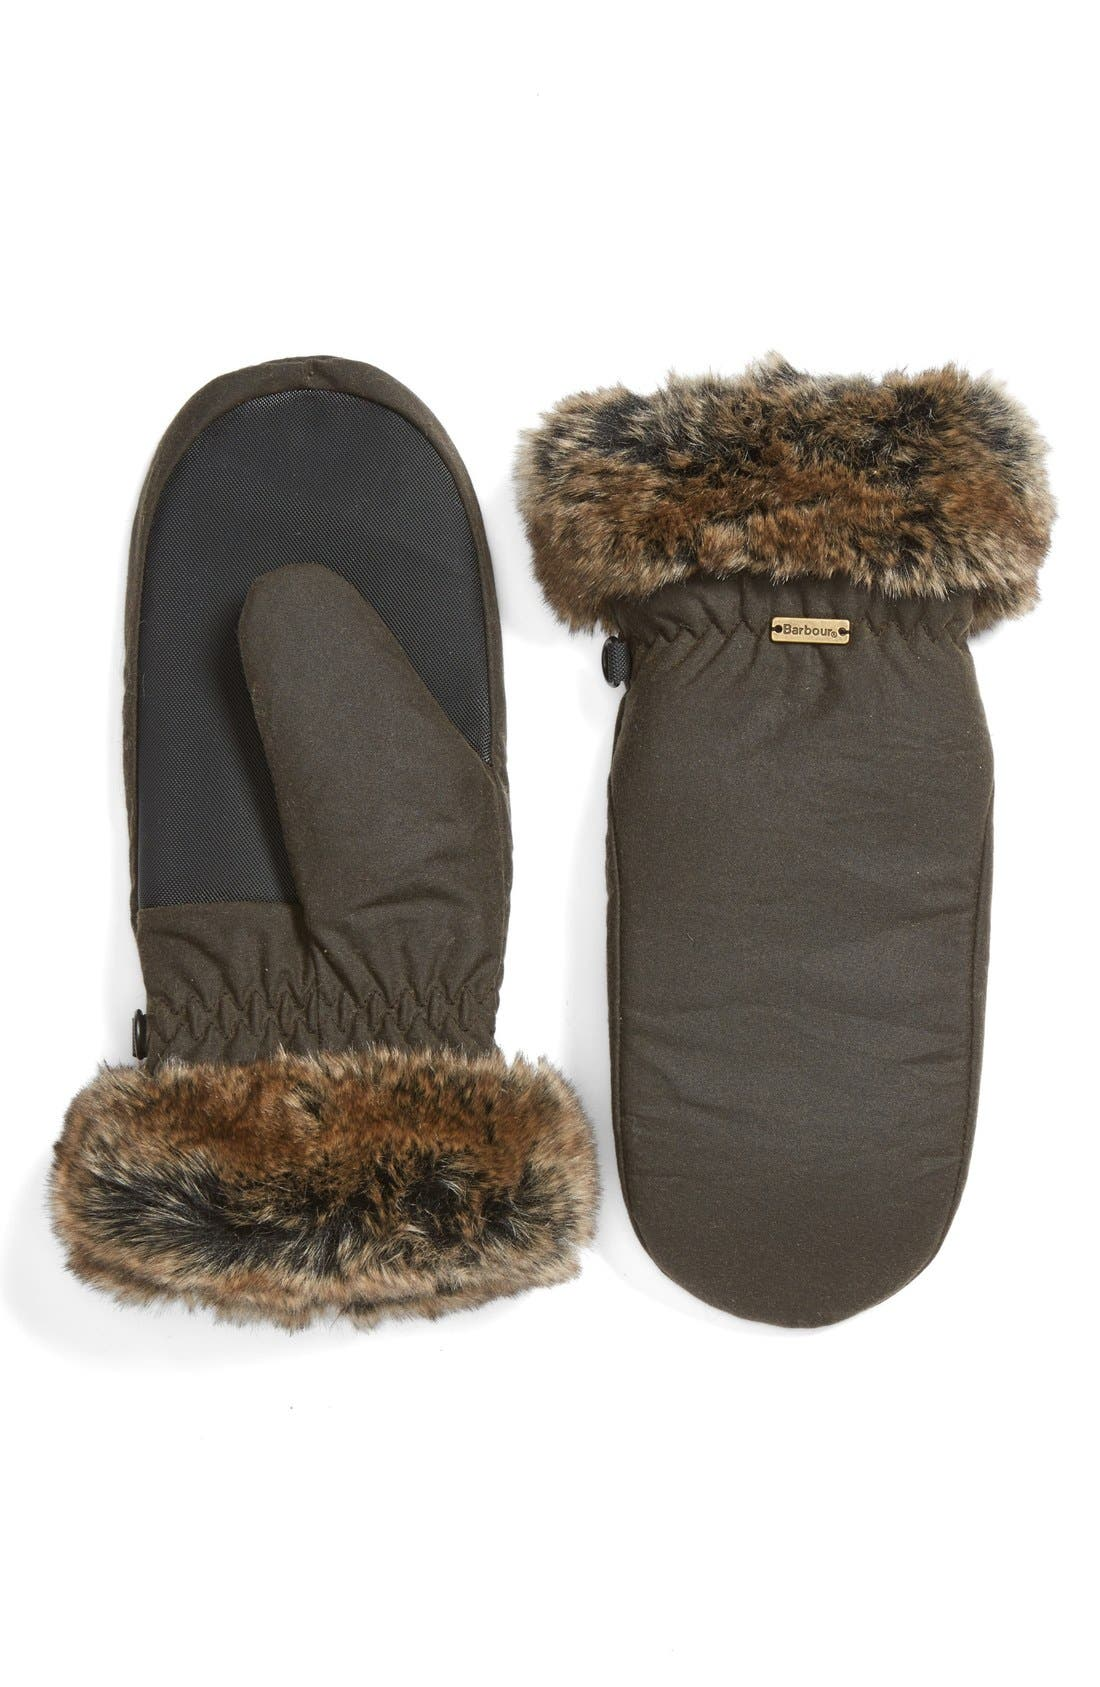 Barbour Waxed Cotton Mittens with Faux Fur Trim